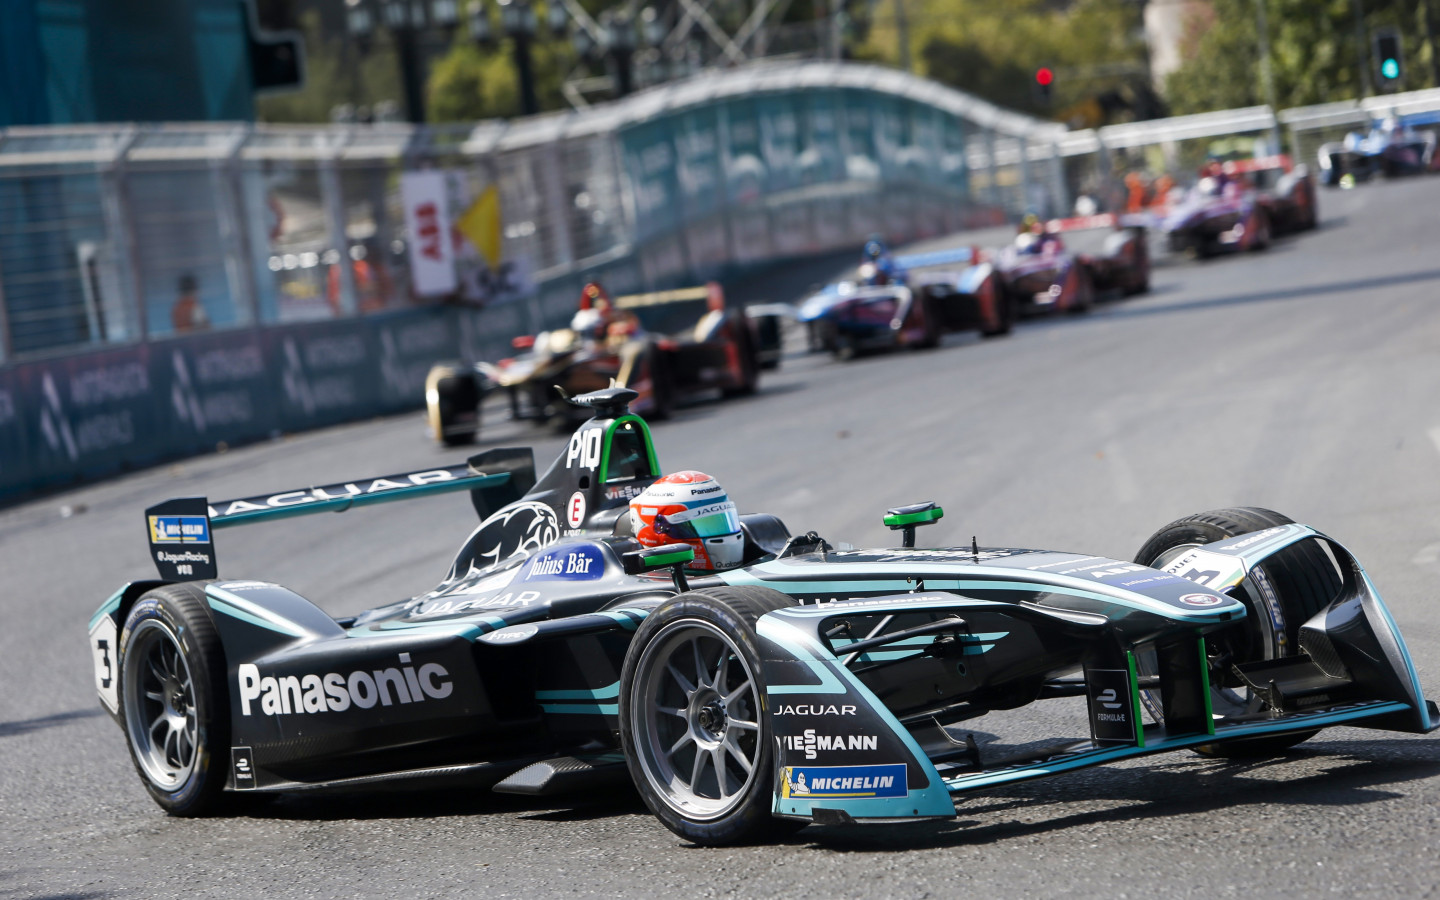 Panasonic Jaguar Racing wallpaper 1440x900